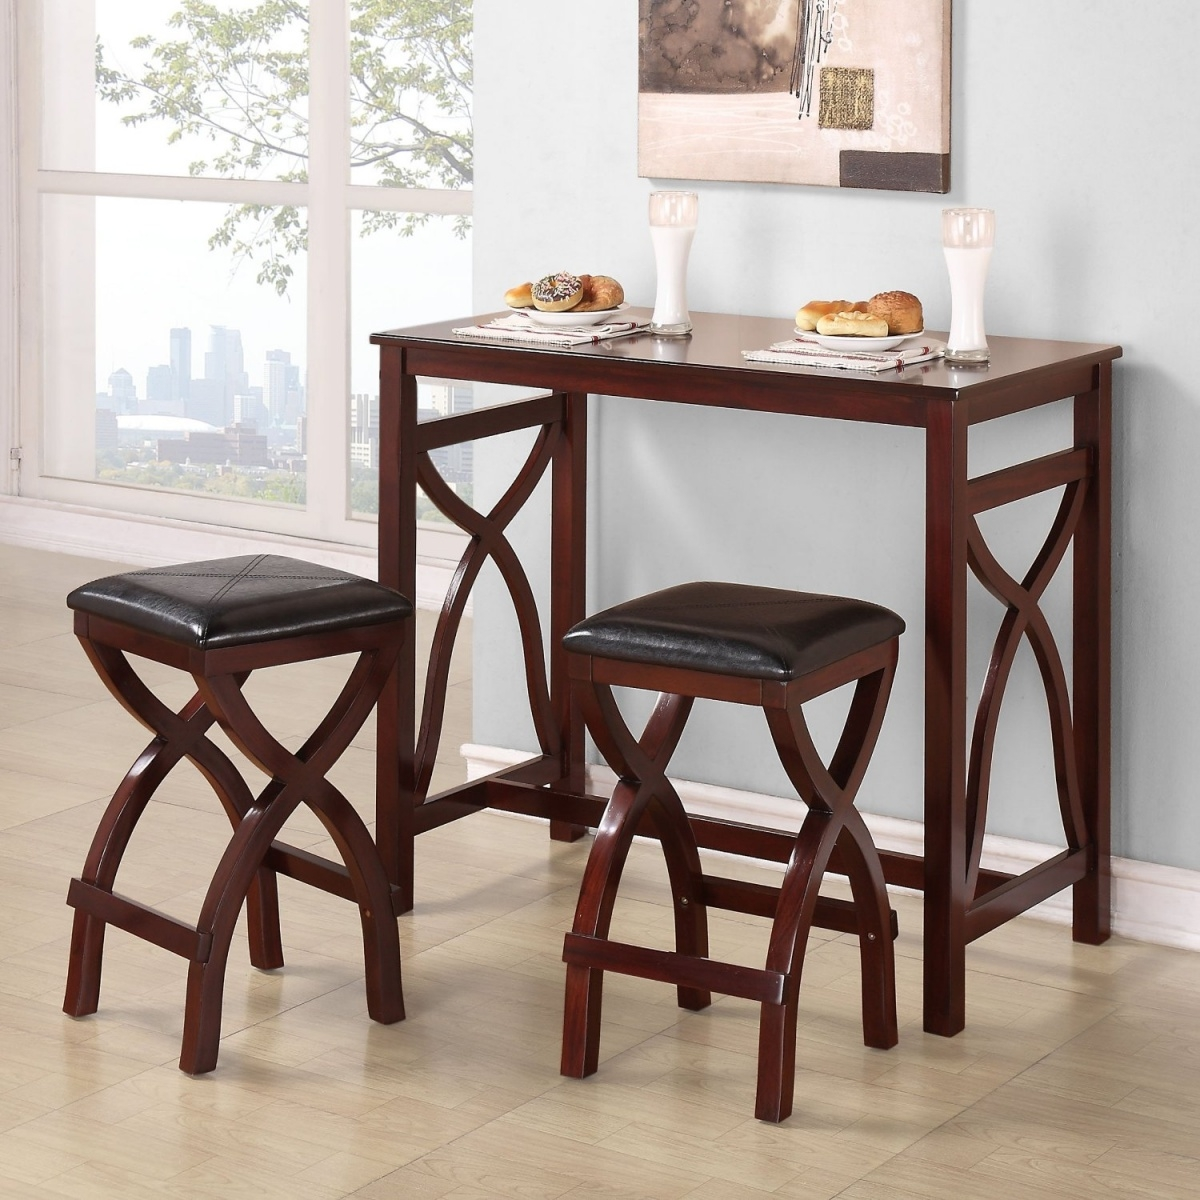 Dining Room Sets For Apartments Layjao